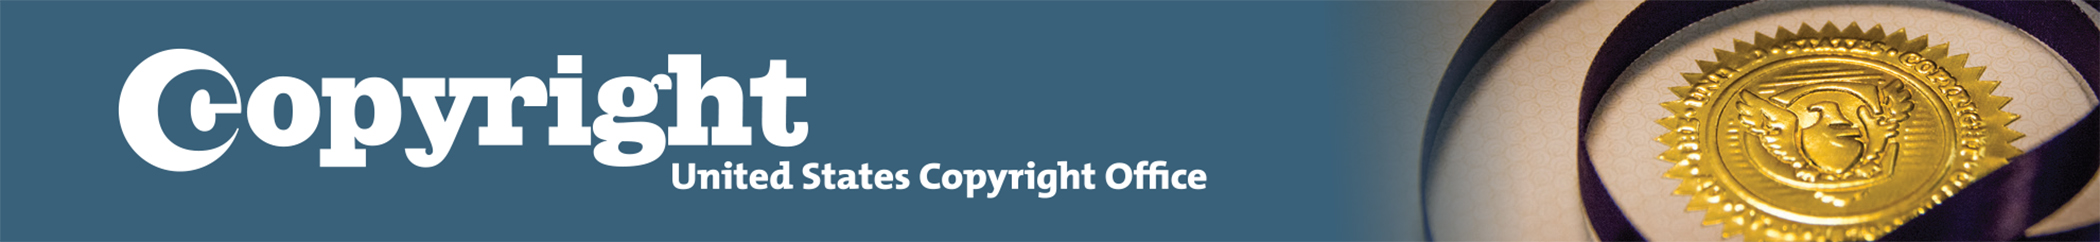 United States Copyright Office